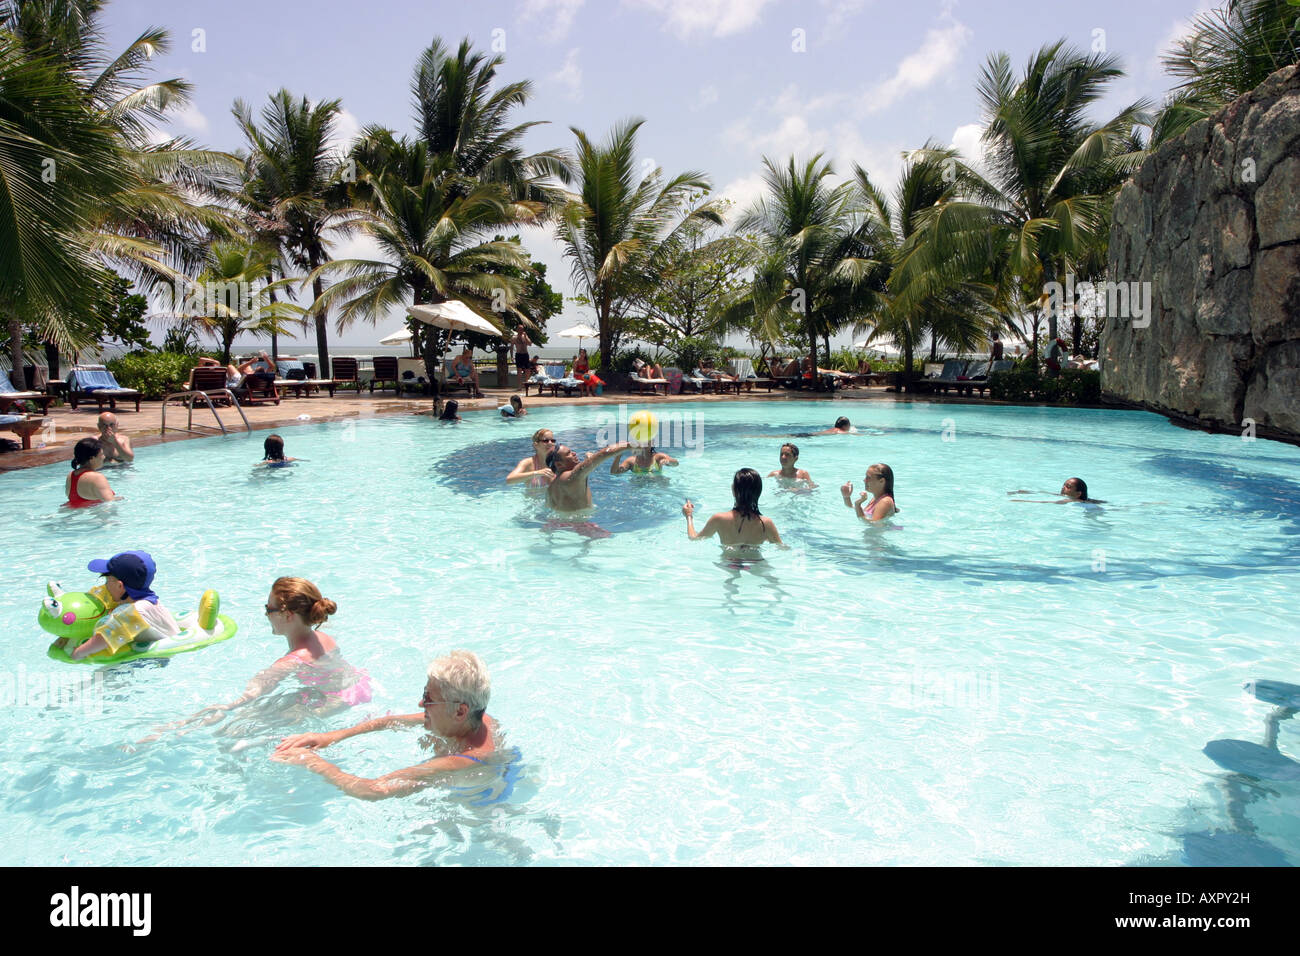 Sri Lanka Tourism People Relaxing In The Swimming Pool Taj Exotica Stock Photo 16899592 Alamy